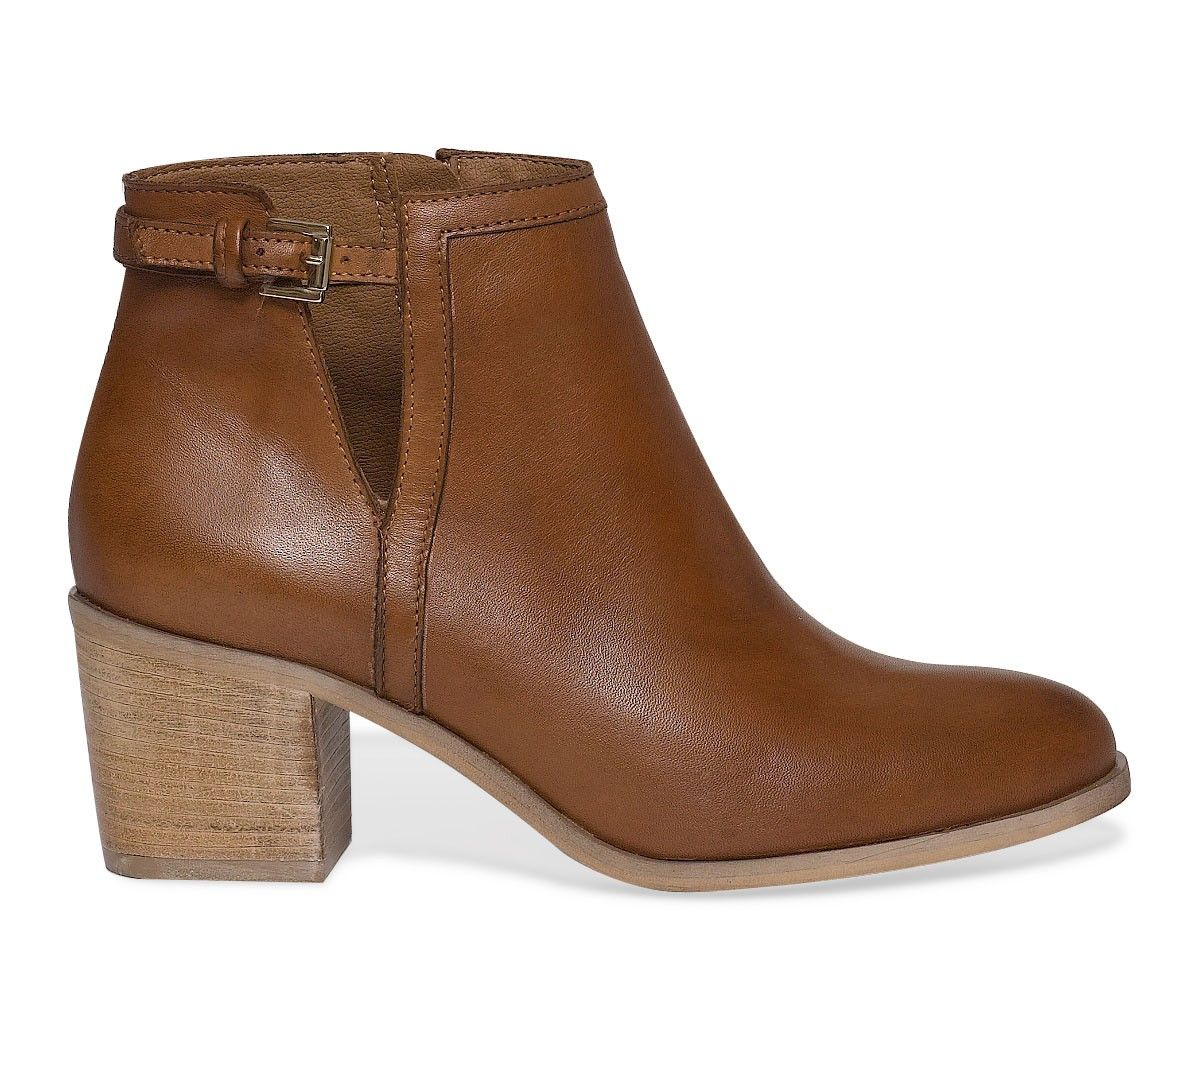 boots cut out cuir cognac - boots / bottines - chaussures femme